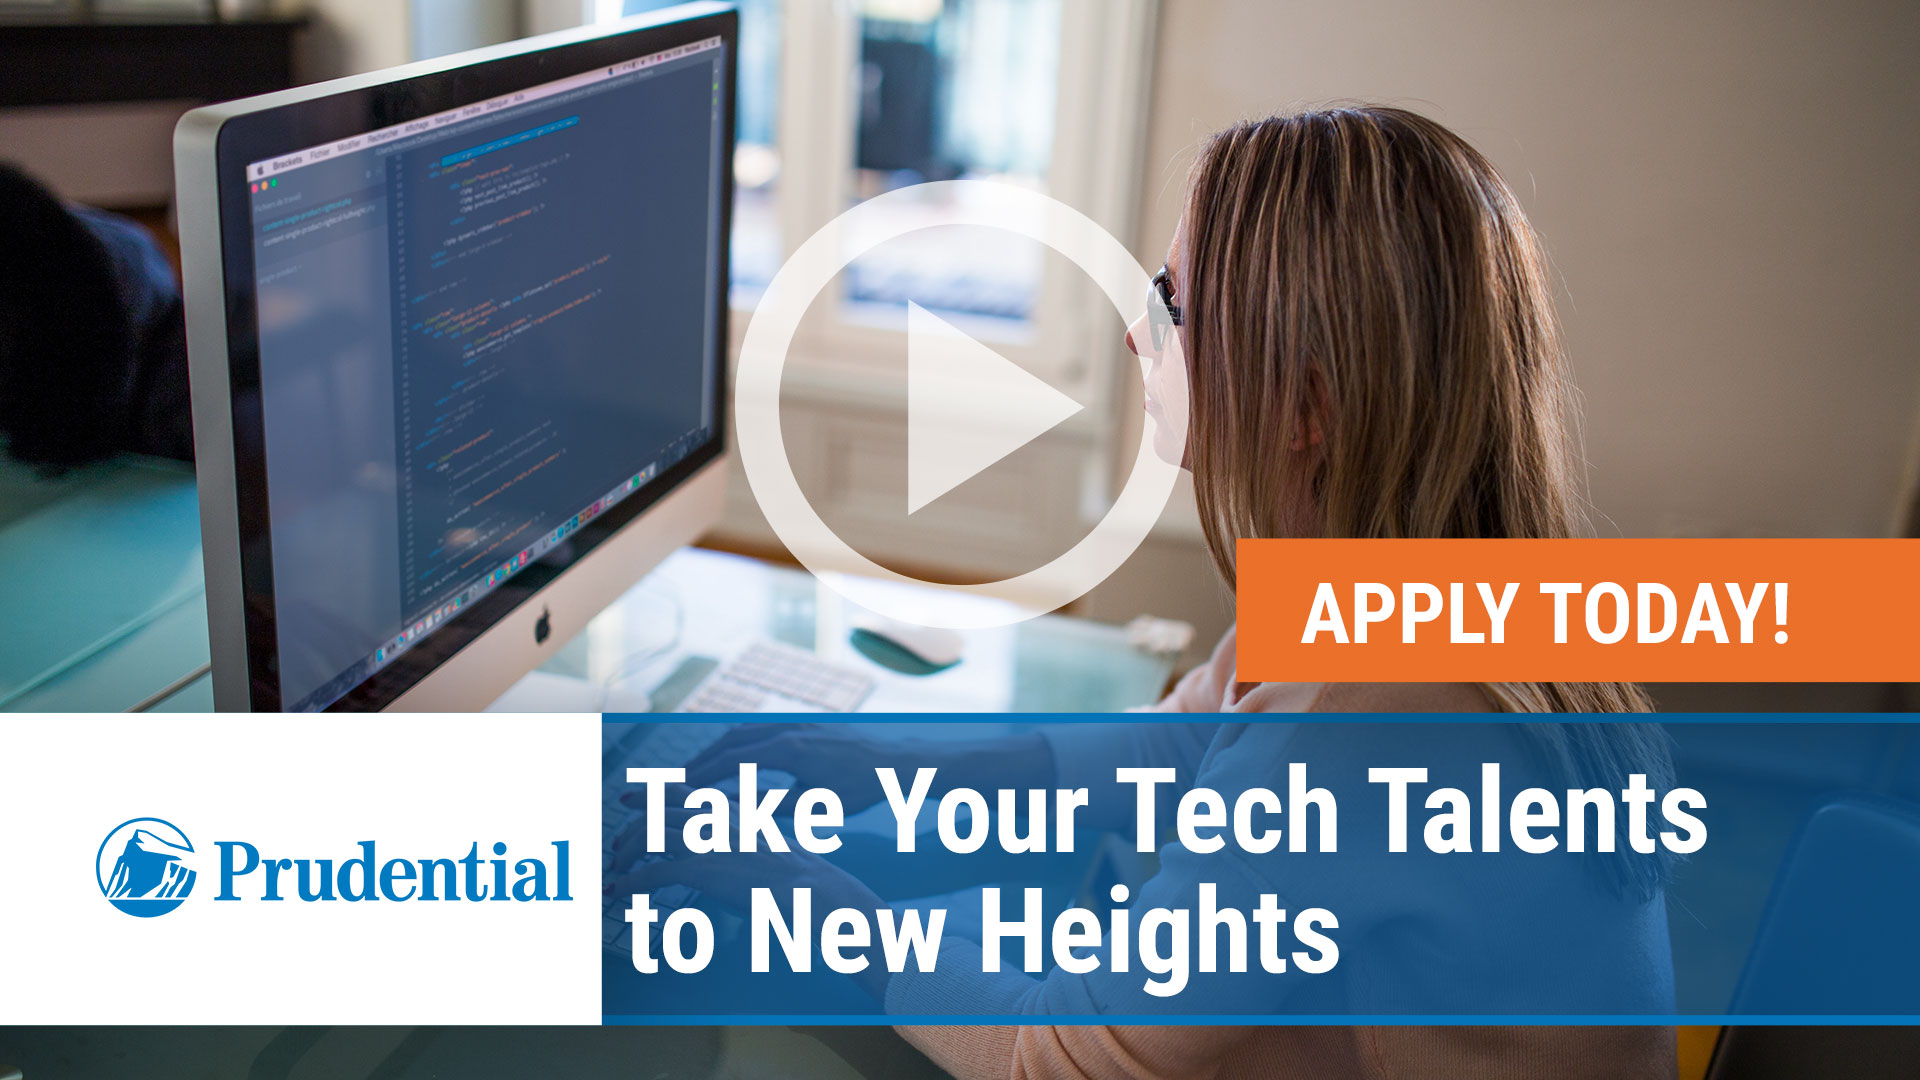 Watch our careers video for available job opening Take Your Tech Talents to New Heights in Roseland, NJ